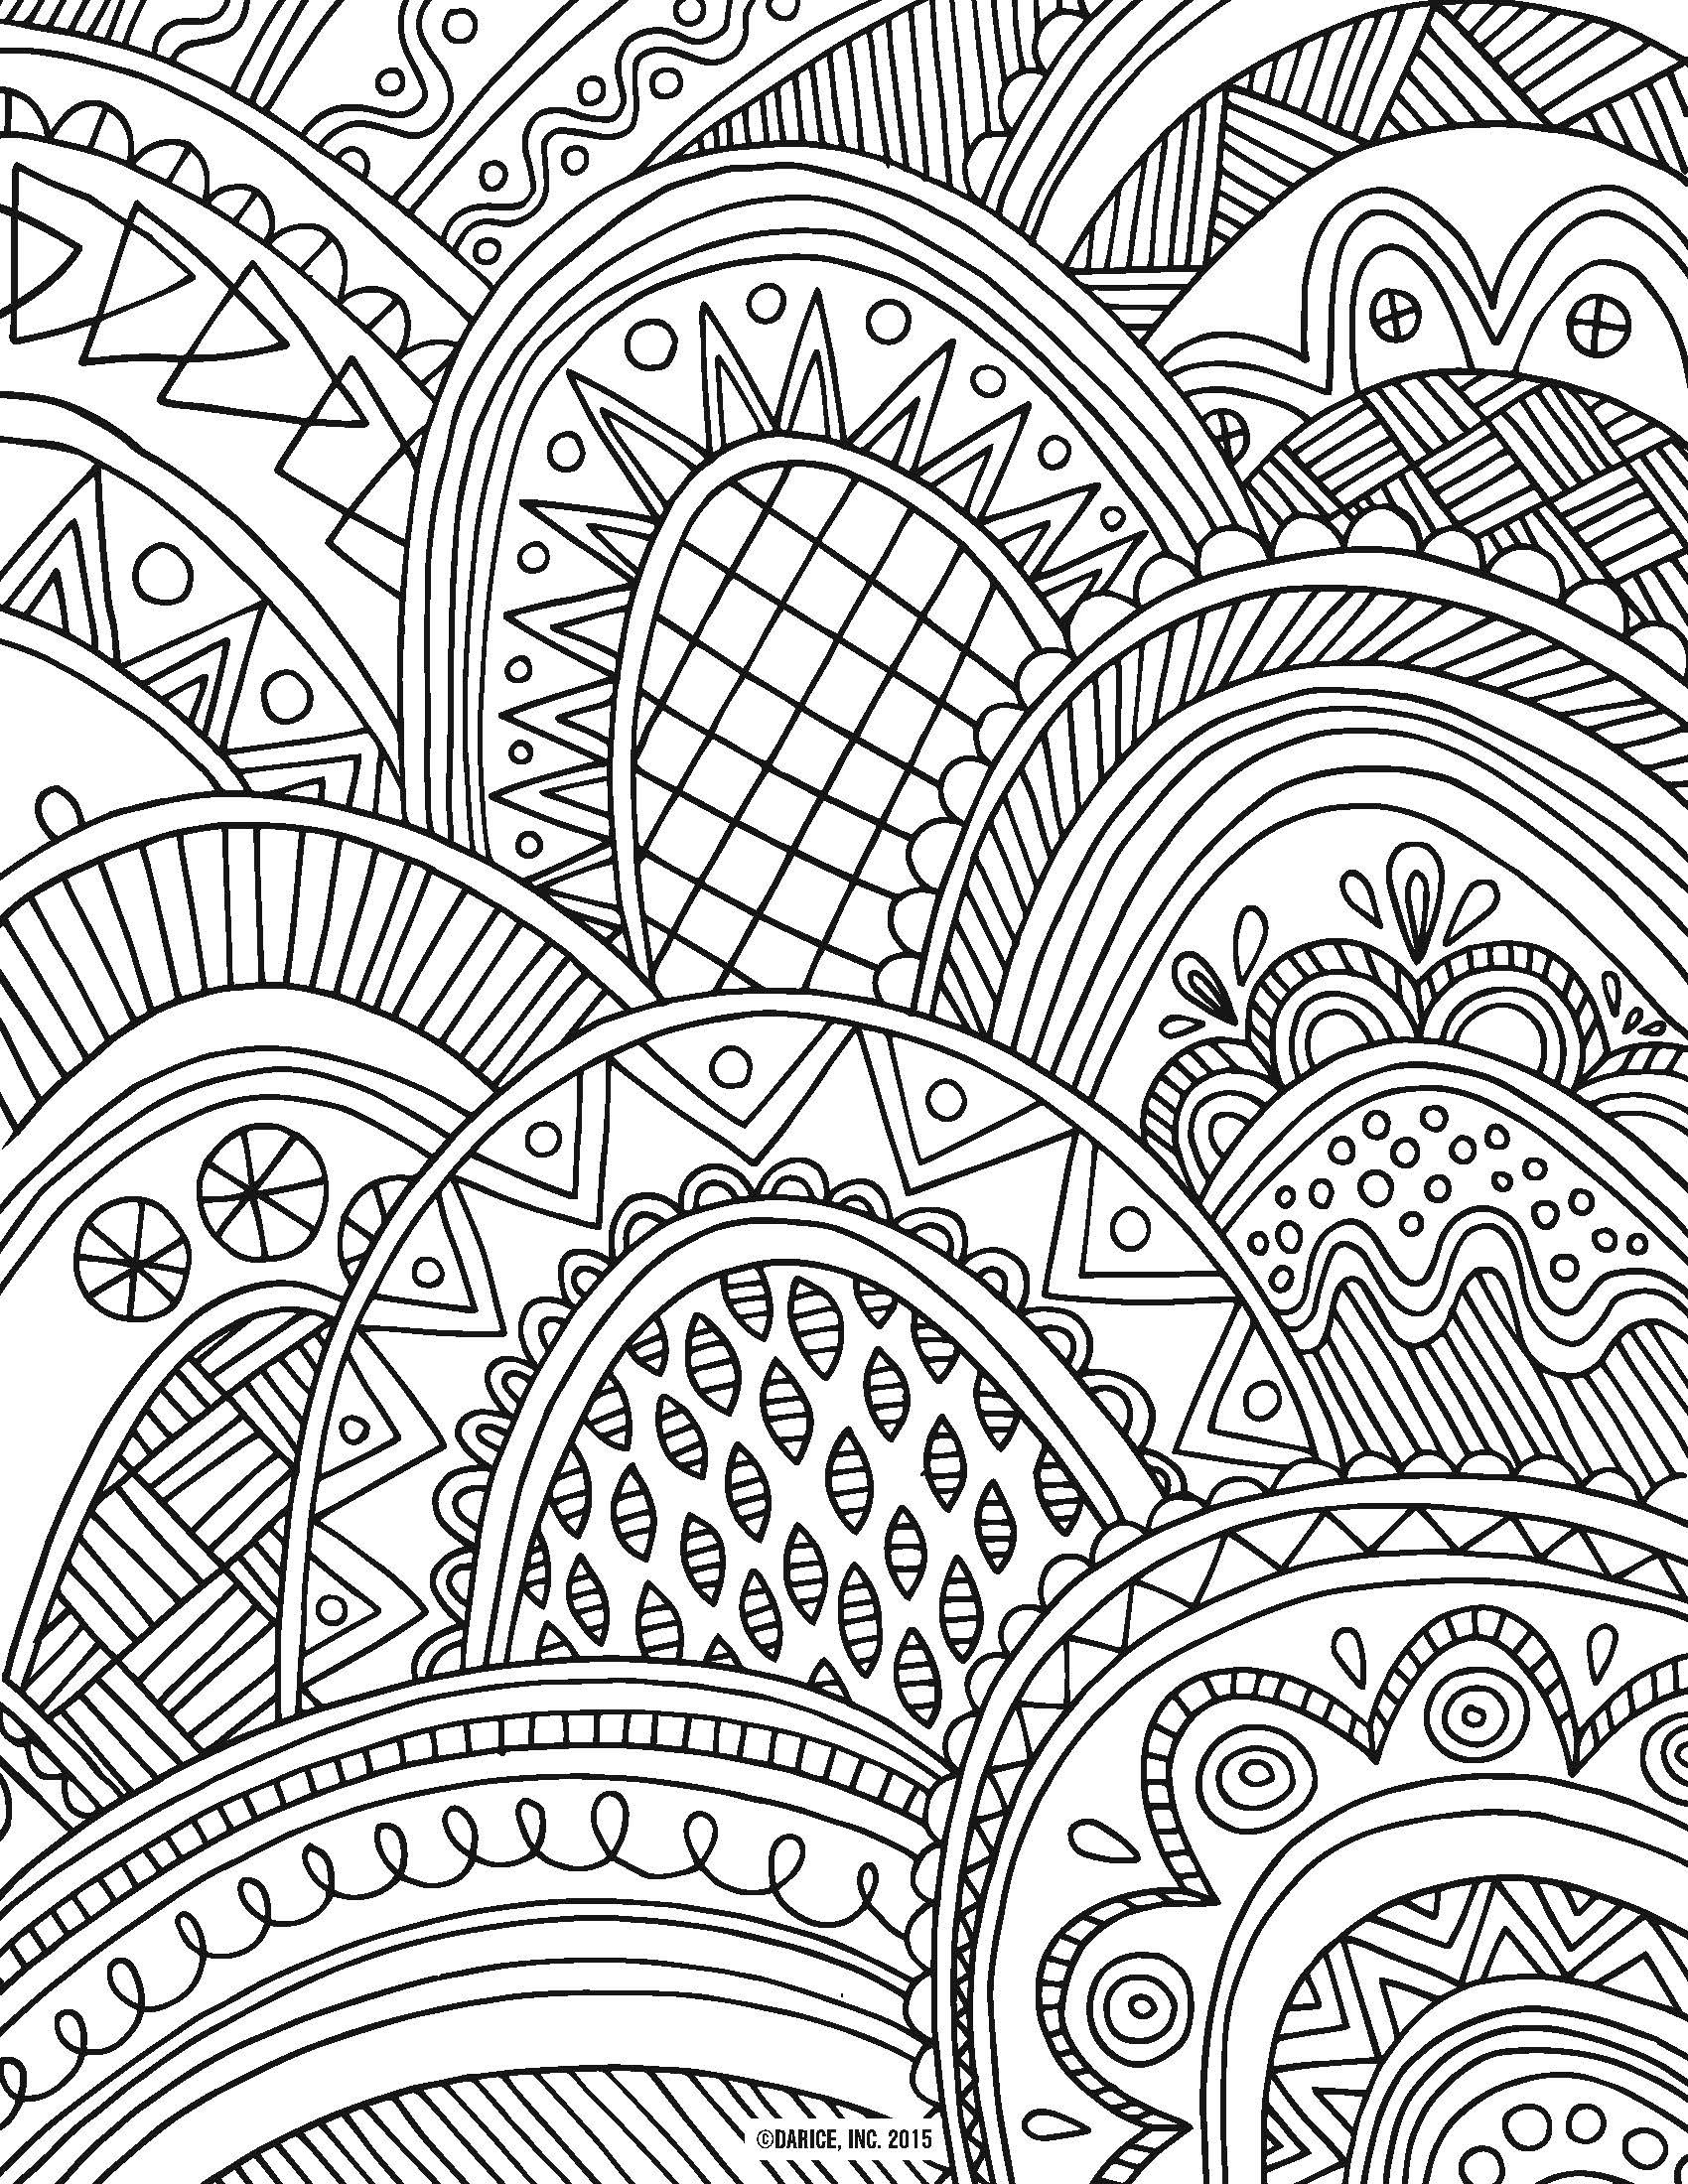 Best ideas about Adult Coloring Books Printable . Save or Pin 9 Free Printable Adult Coloring Pages Now.